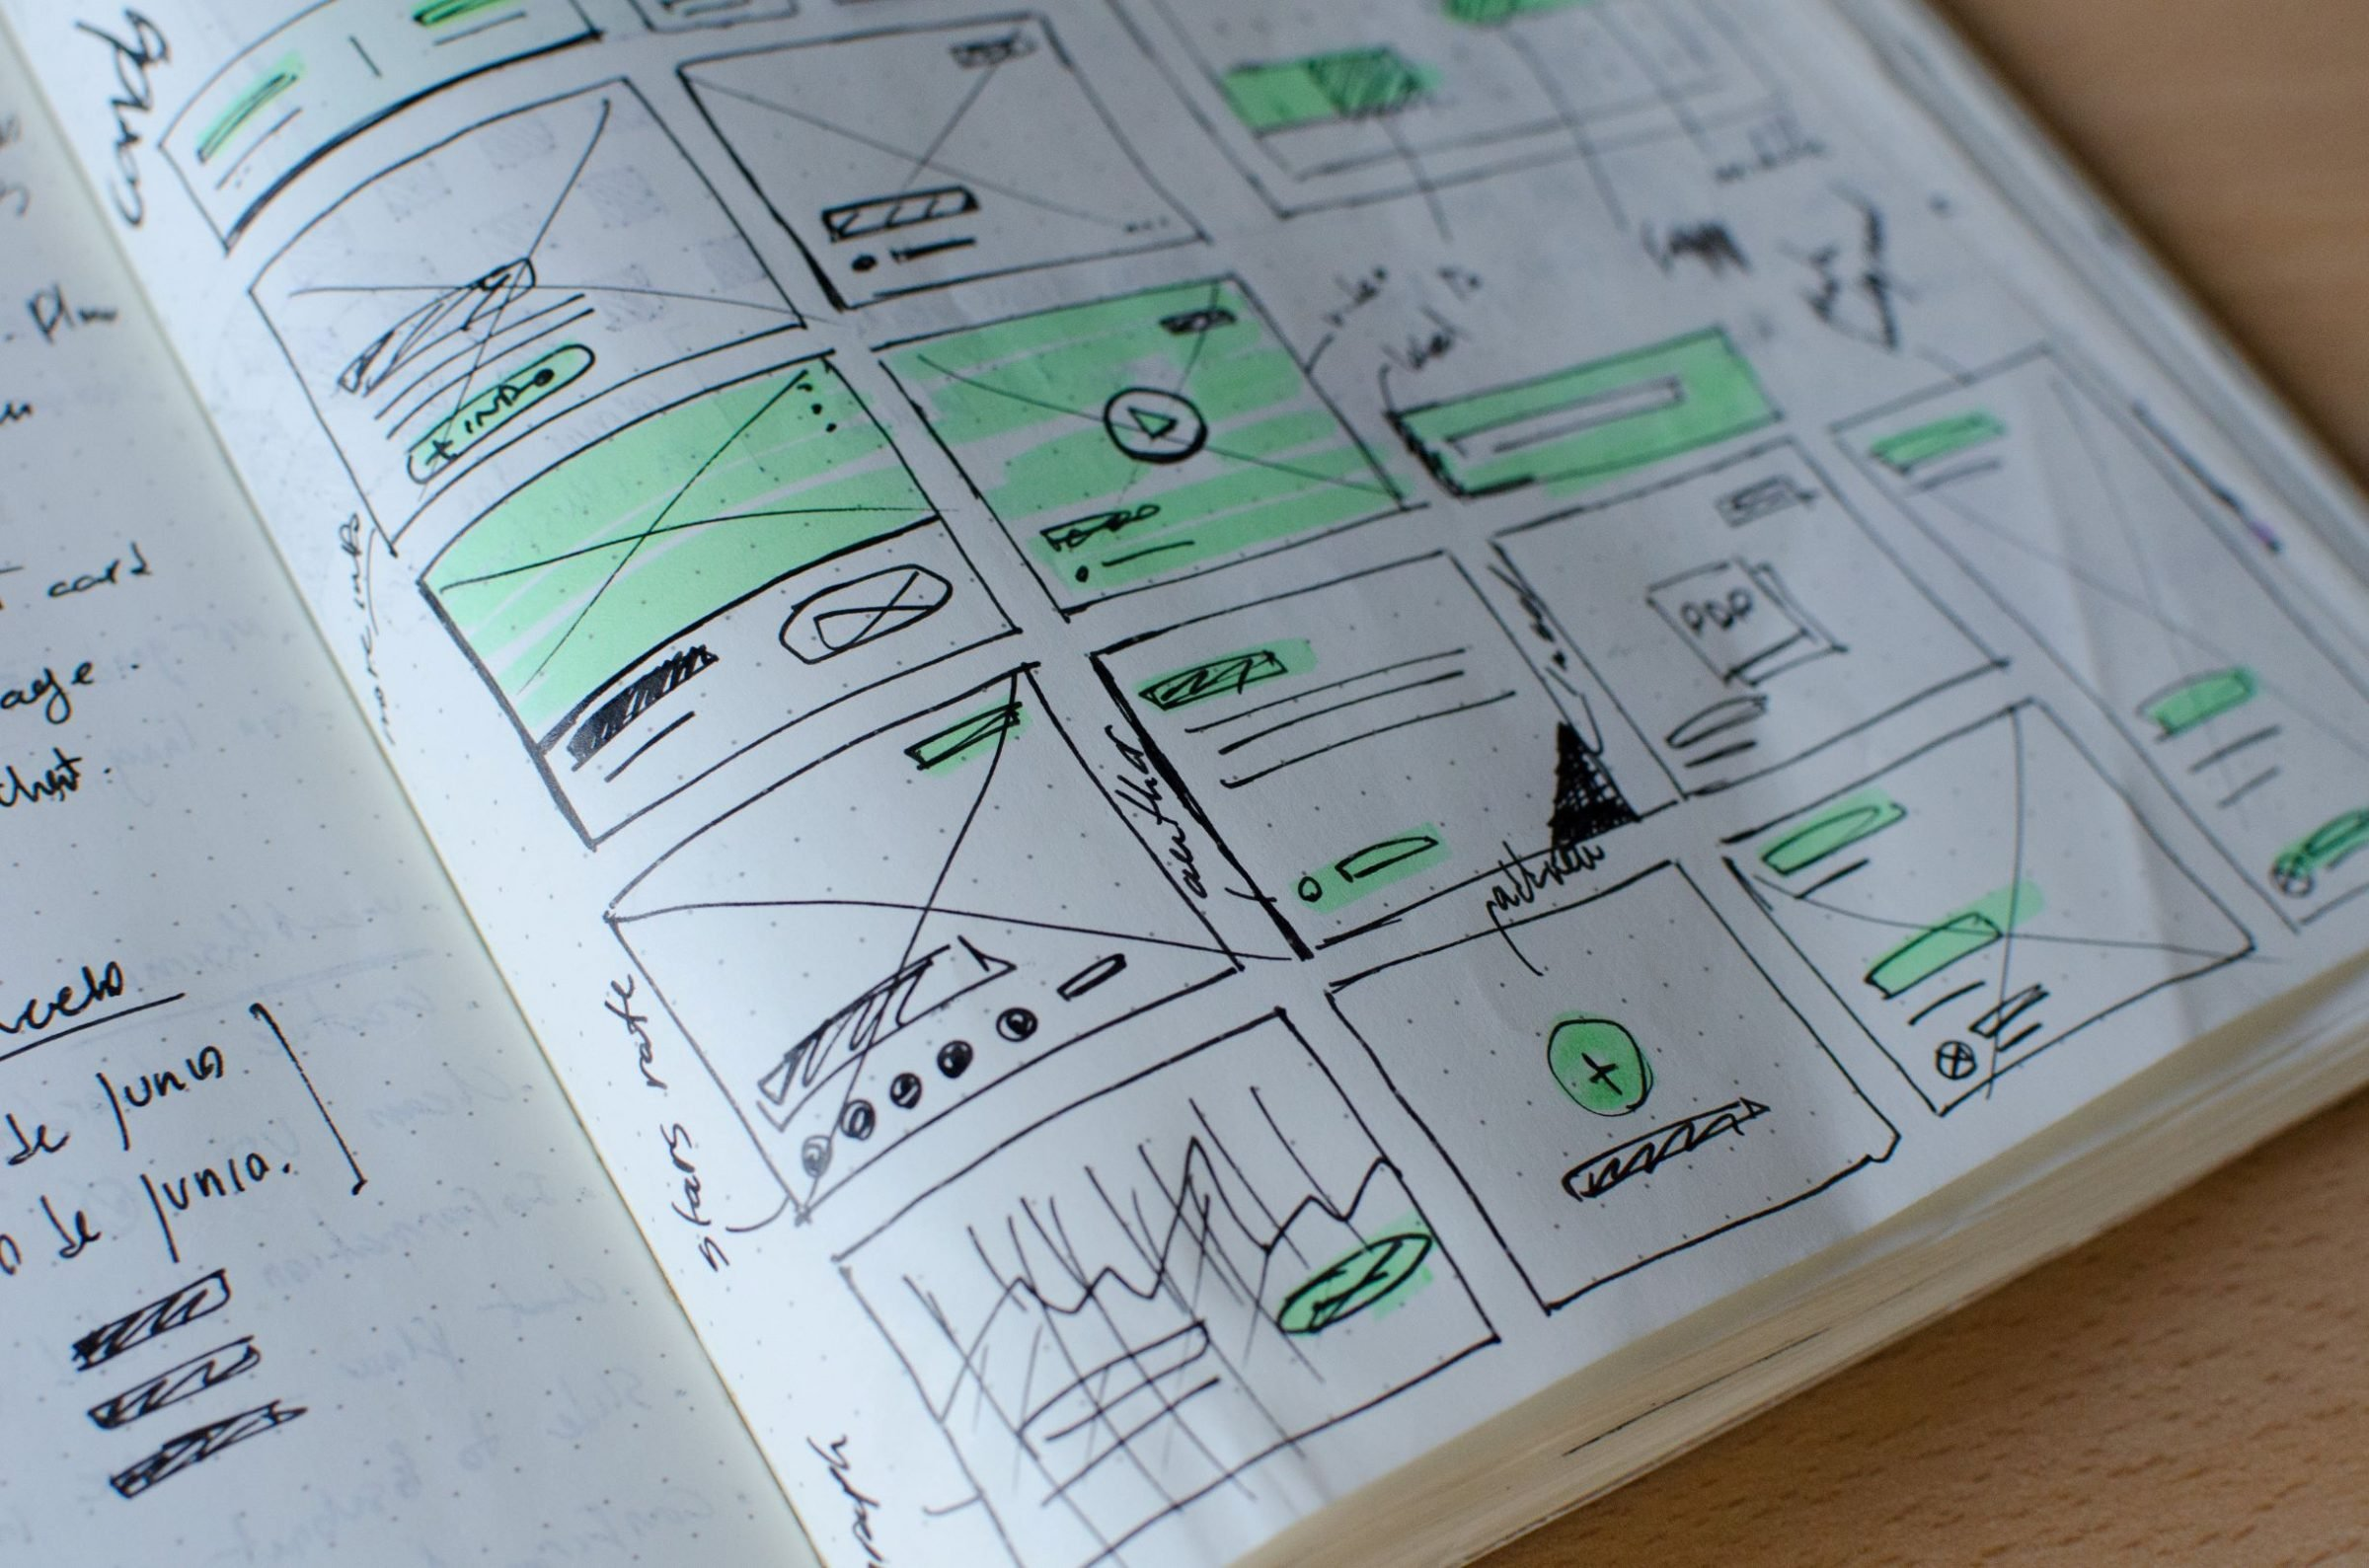 Notebook page with sketch of website structure